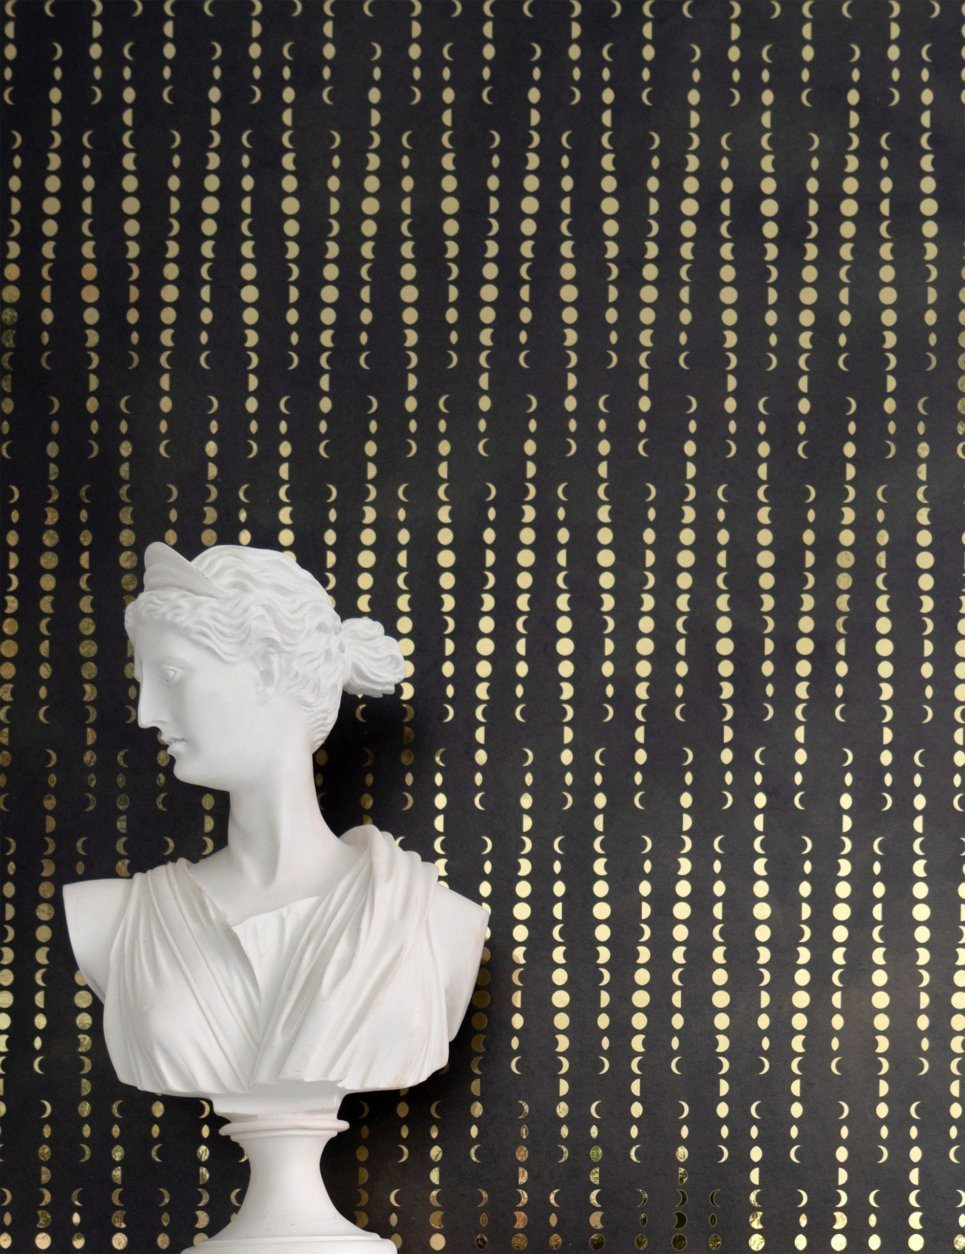 This photo provided by artist Aimee Wilder shows one of her wallpaper designs. Wilder's Eudaimonia collection was named after a Greek word meaning happiness. She was interested in exploring how the celestial bodies over Earth influence us, and the moon's phases are depicted in this Earthlight pattern from the collection. Available in a range of pastels and neutrals, the simple yet artfully-drawn pattern is evocative and compelling, part of the eternal charm of illustrated prints. (Aimee Wilder via AP)